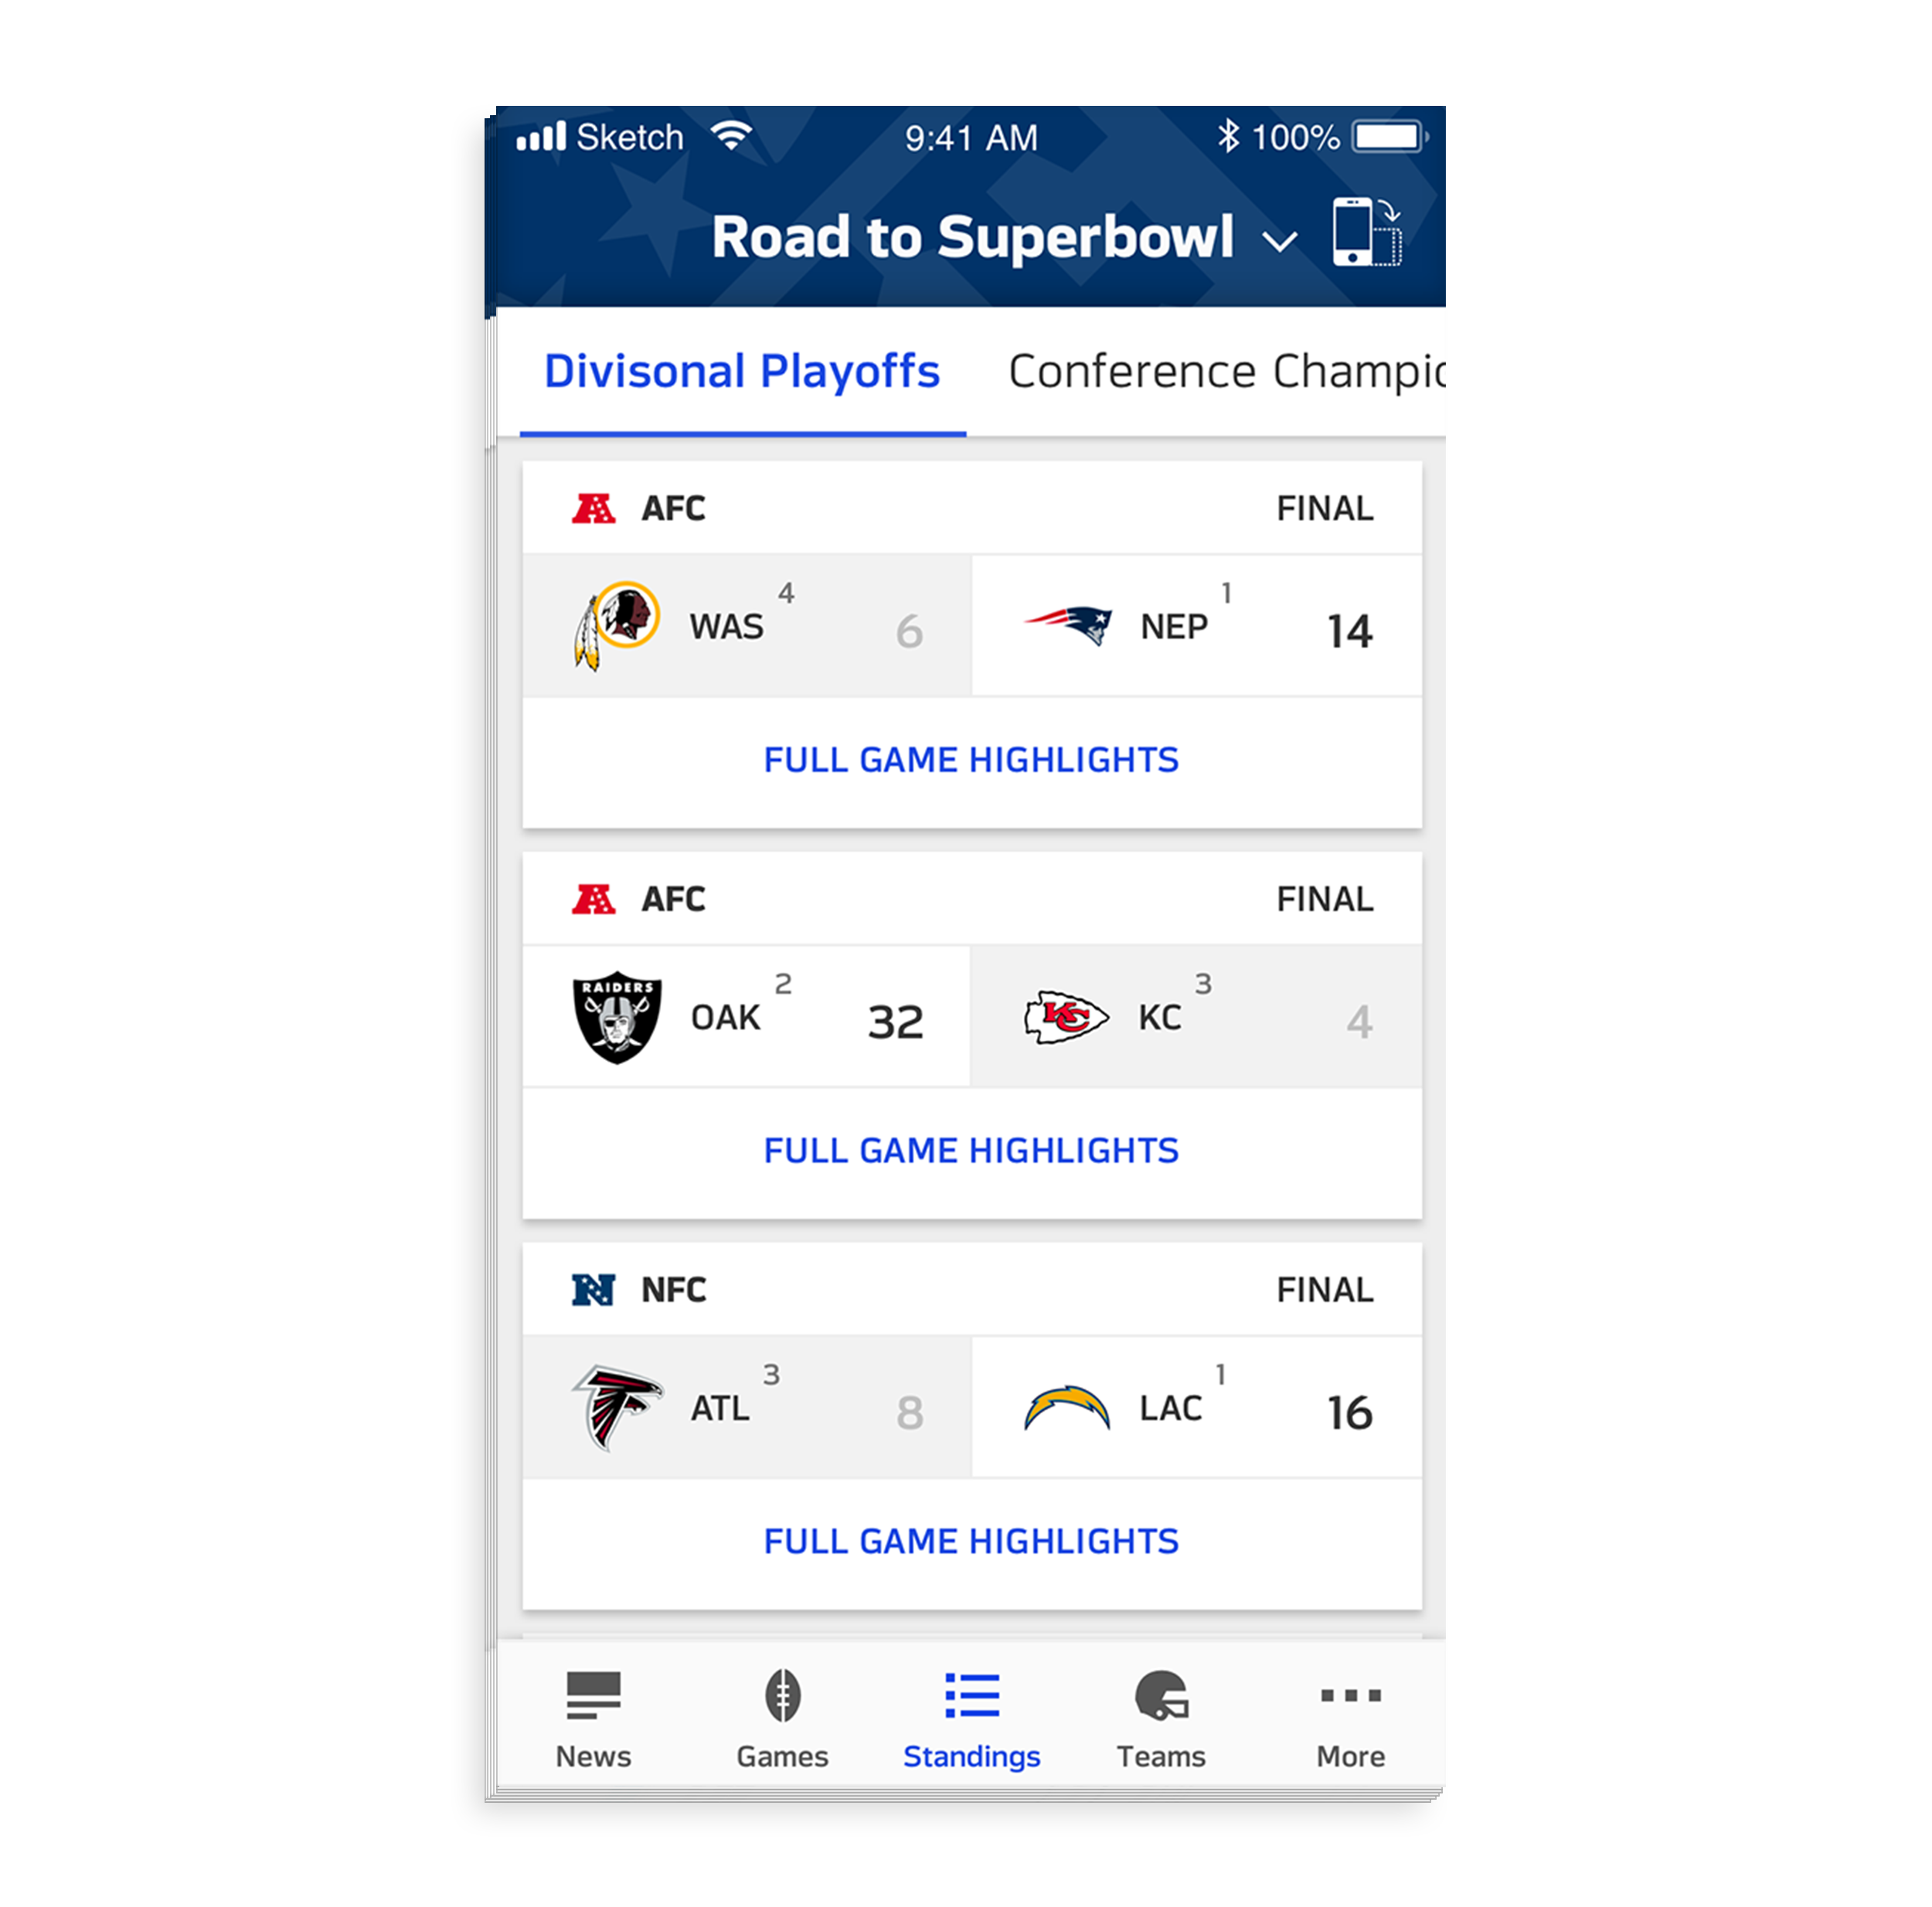 - Users can see the journey to Super Bowl for each team.